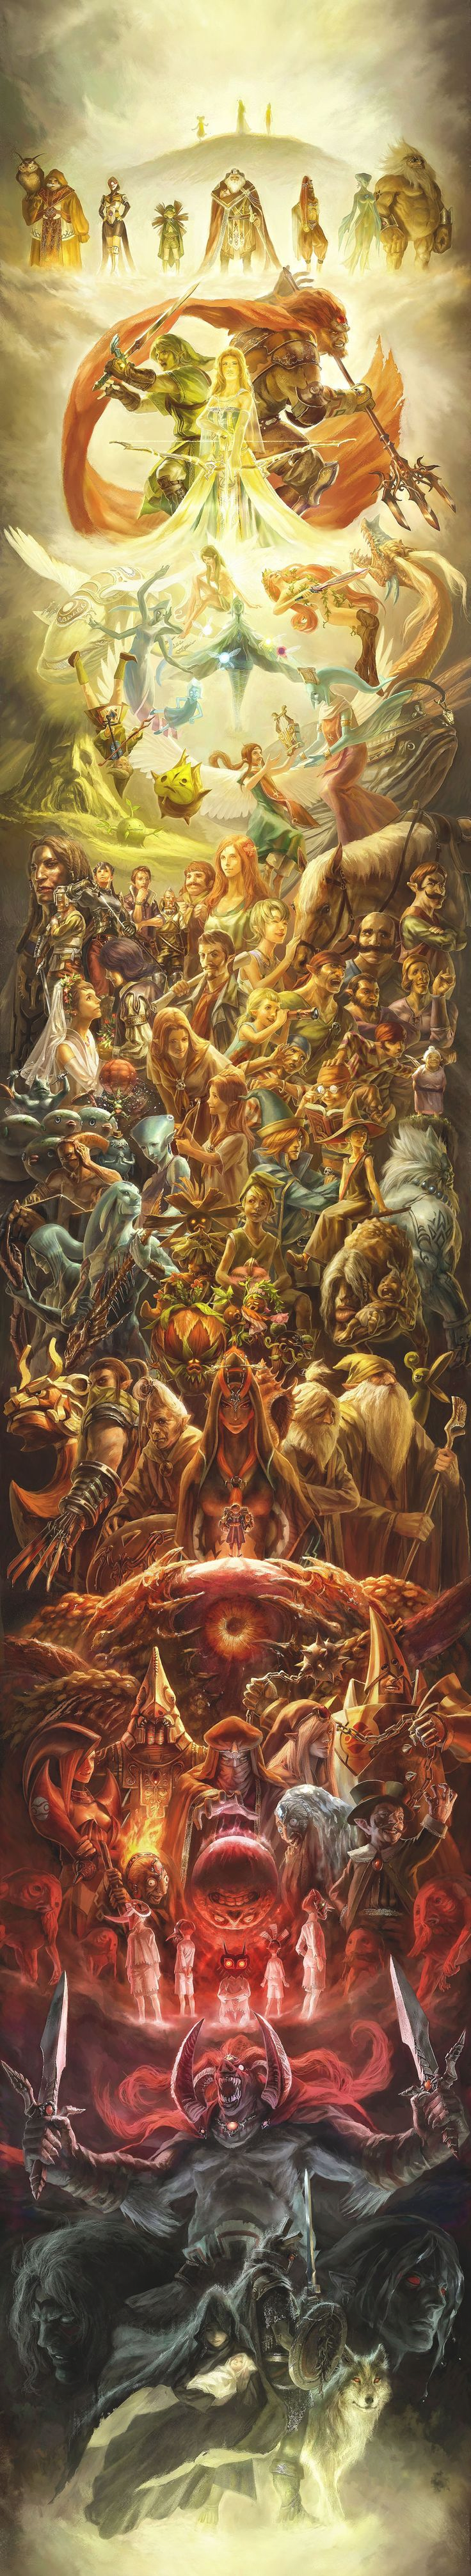 Awesome Legend of Zelda picture.